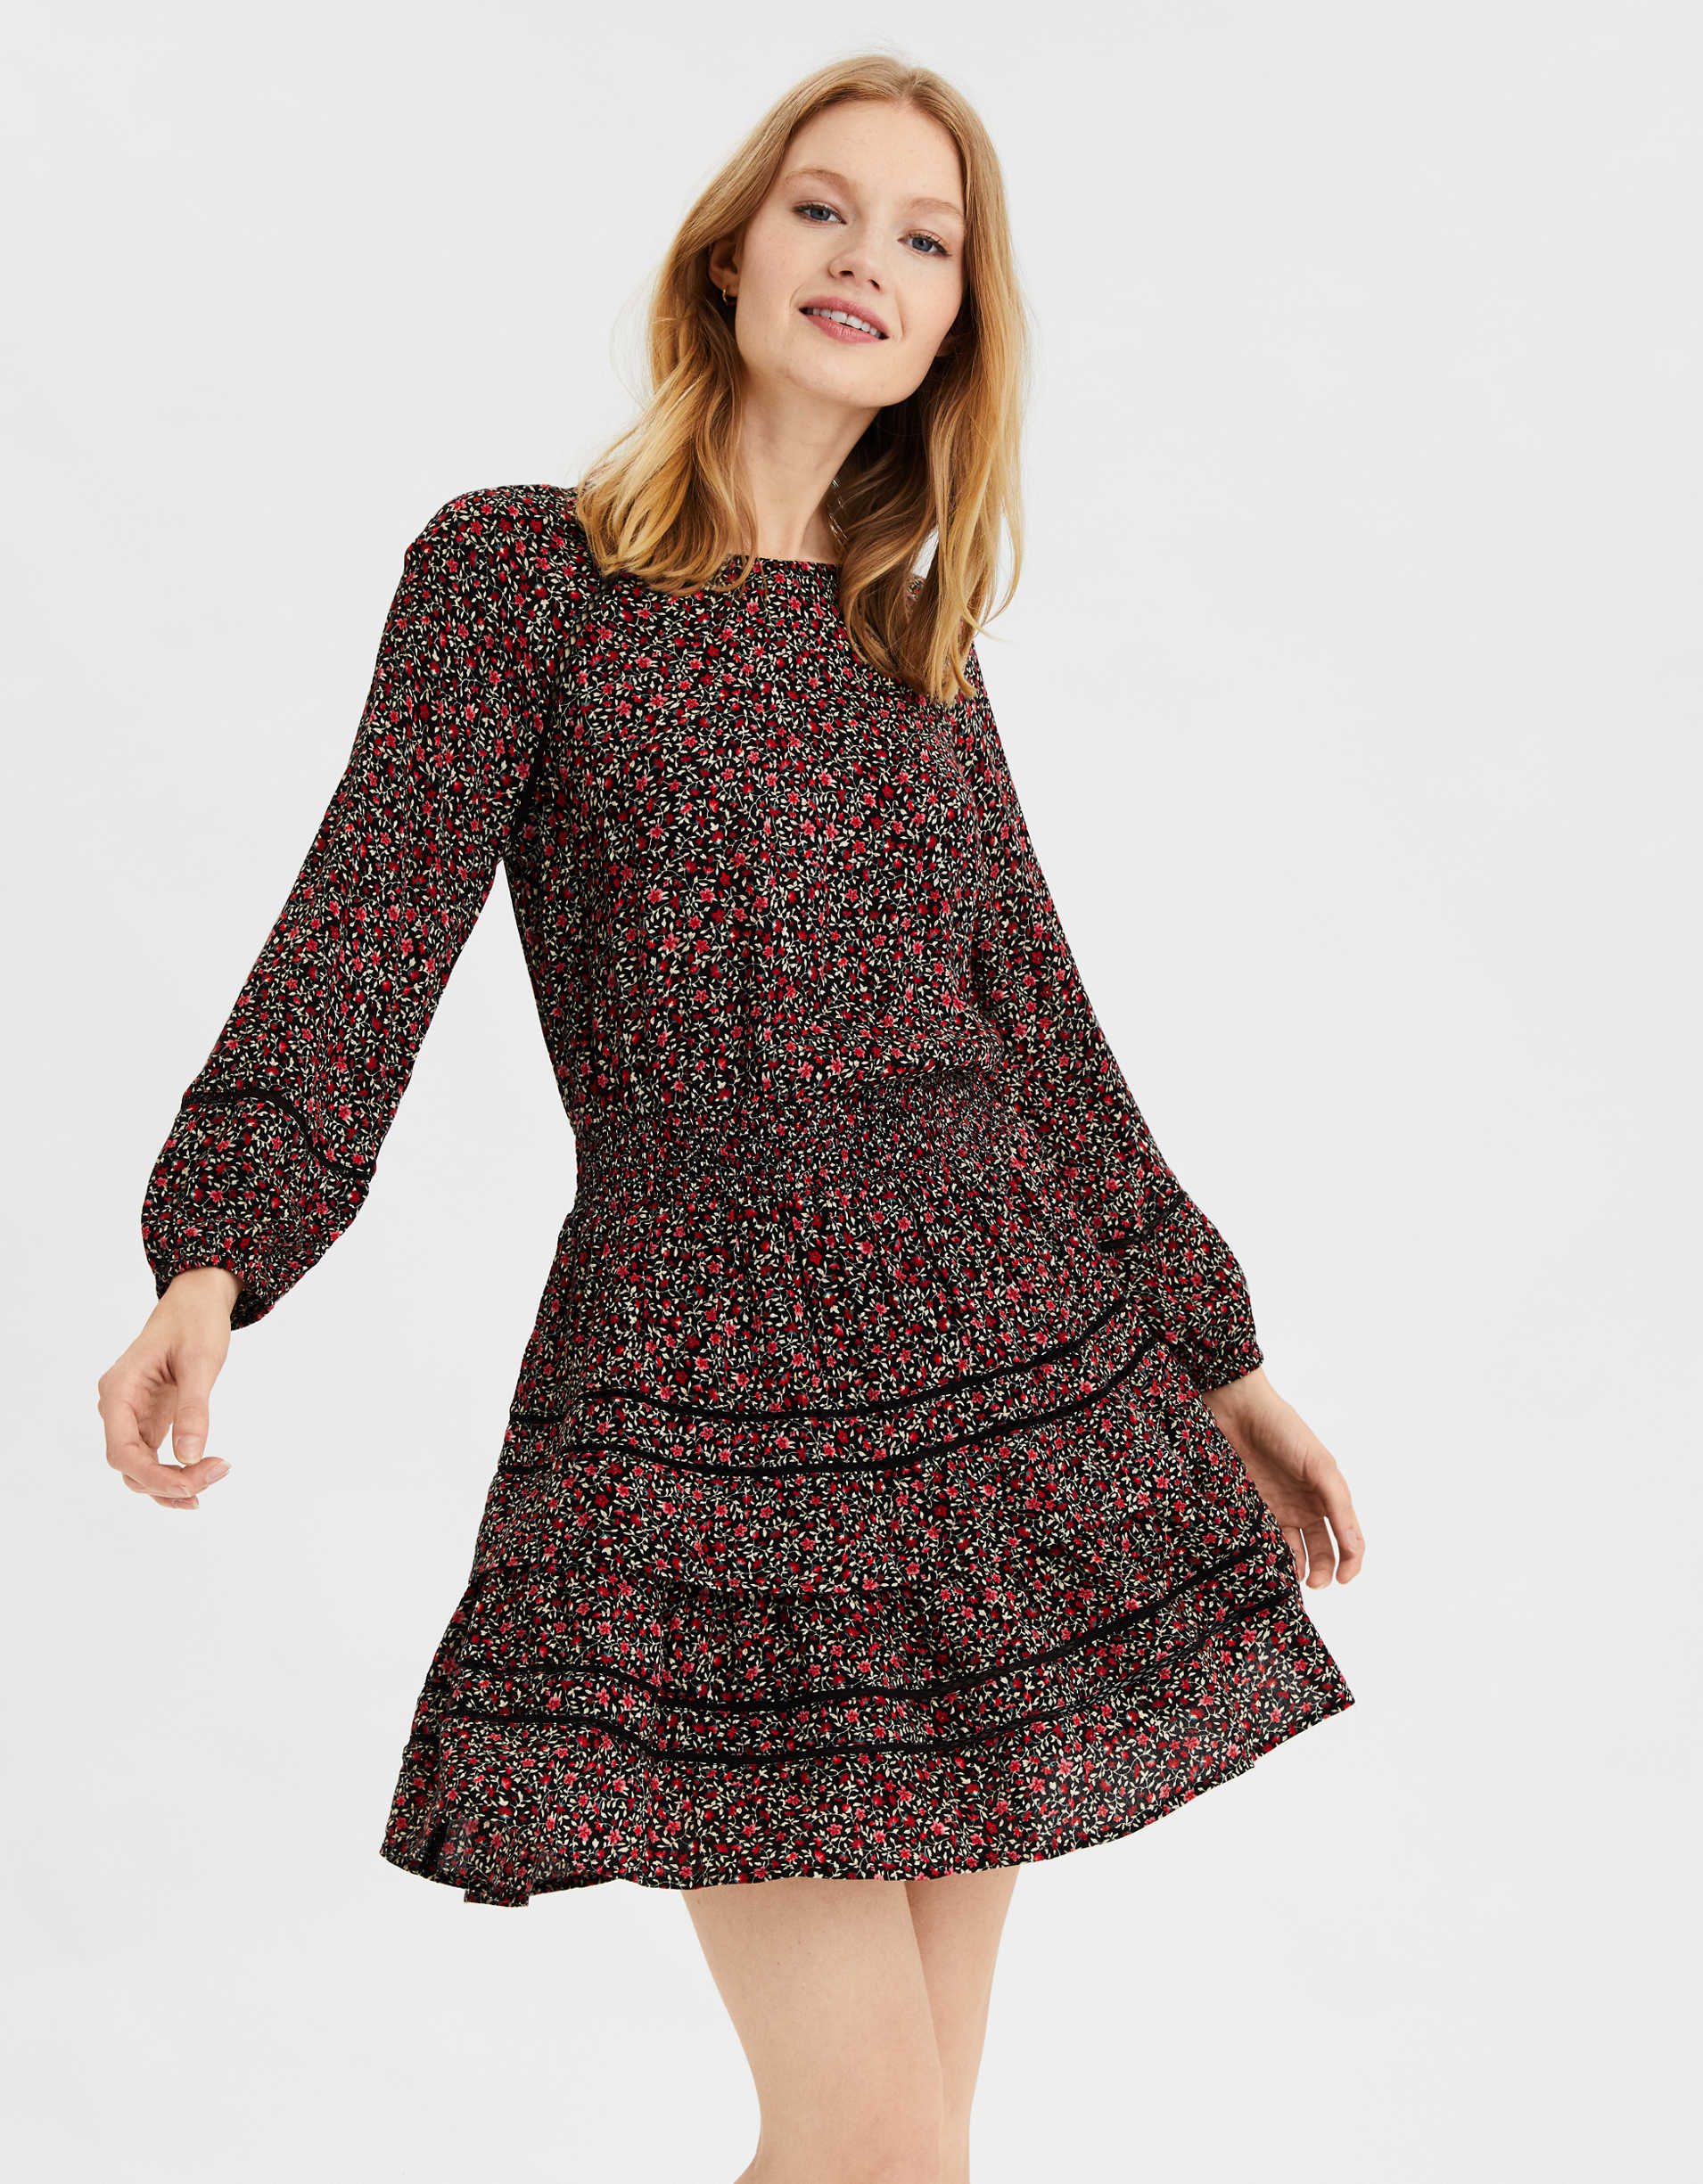 Ae Printed Tiered Mini Dress by American Eagle Outfitters